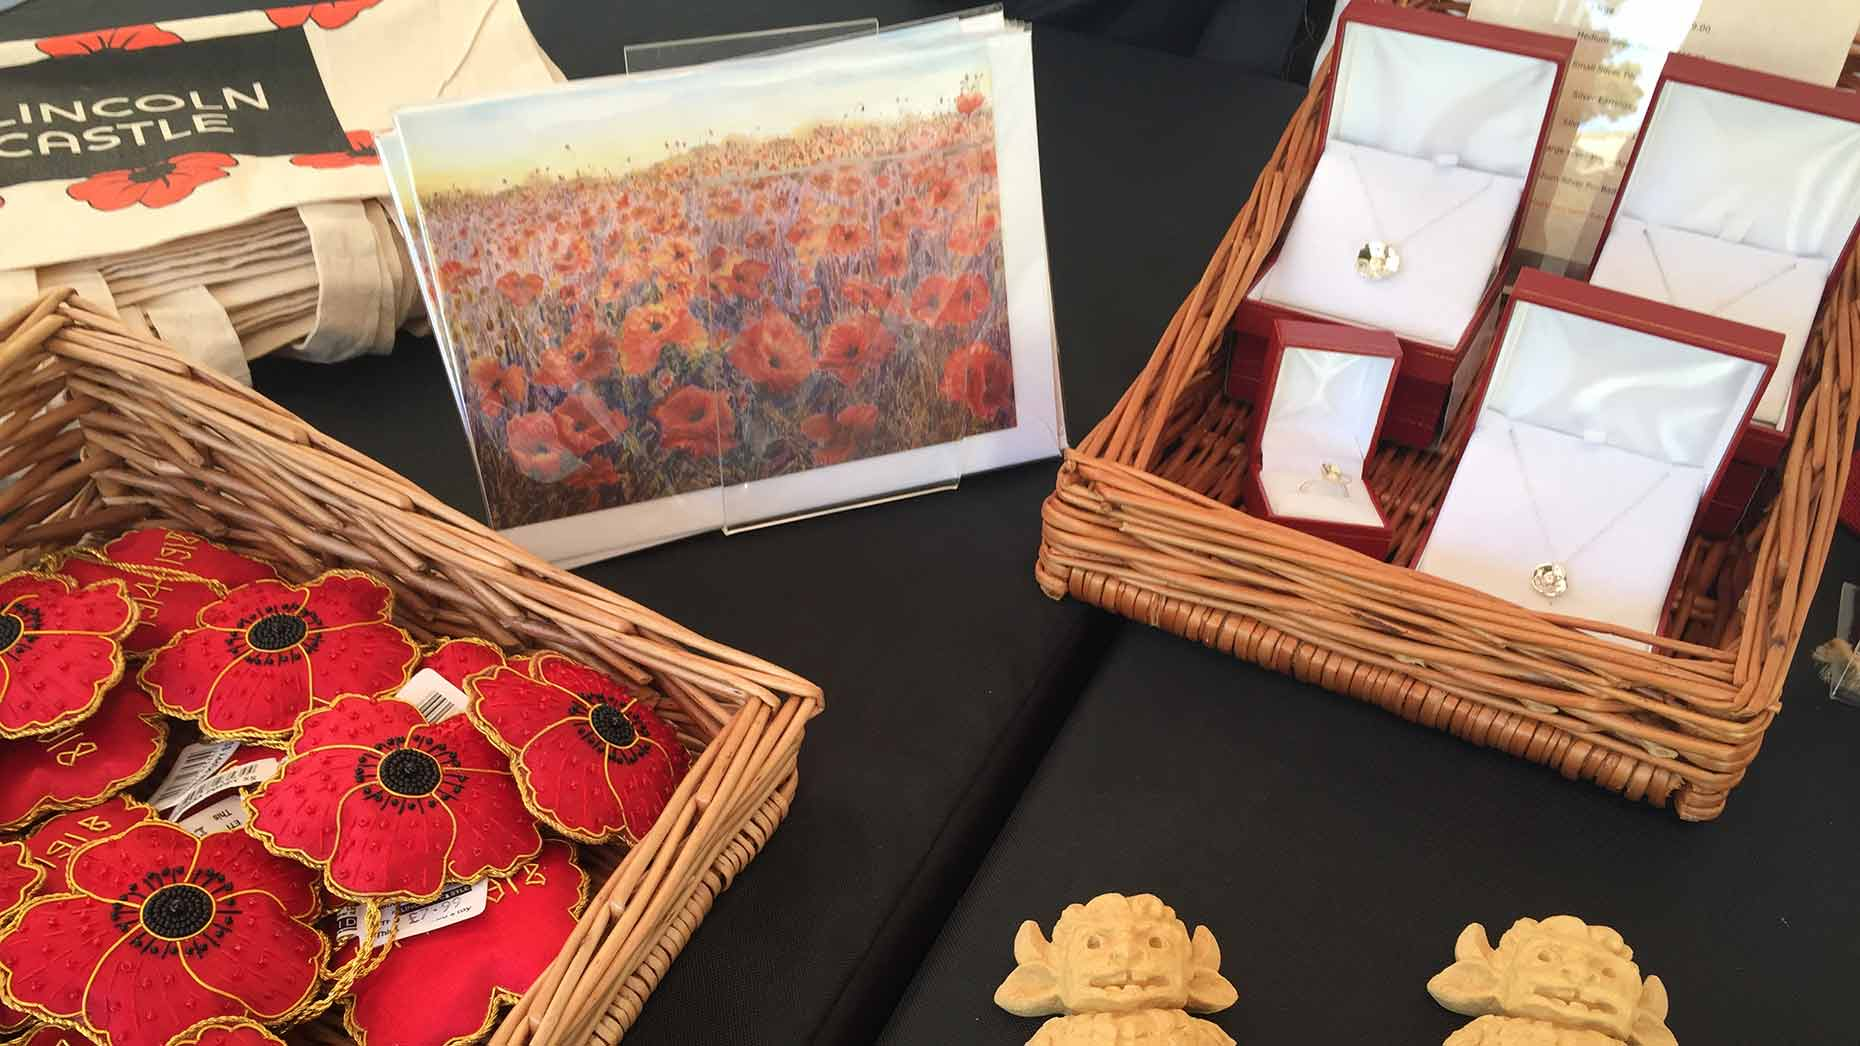 A wide selection of handmade, locally produced gifts are on offer at Lincoln Castle. Photo: Sophie Bee